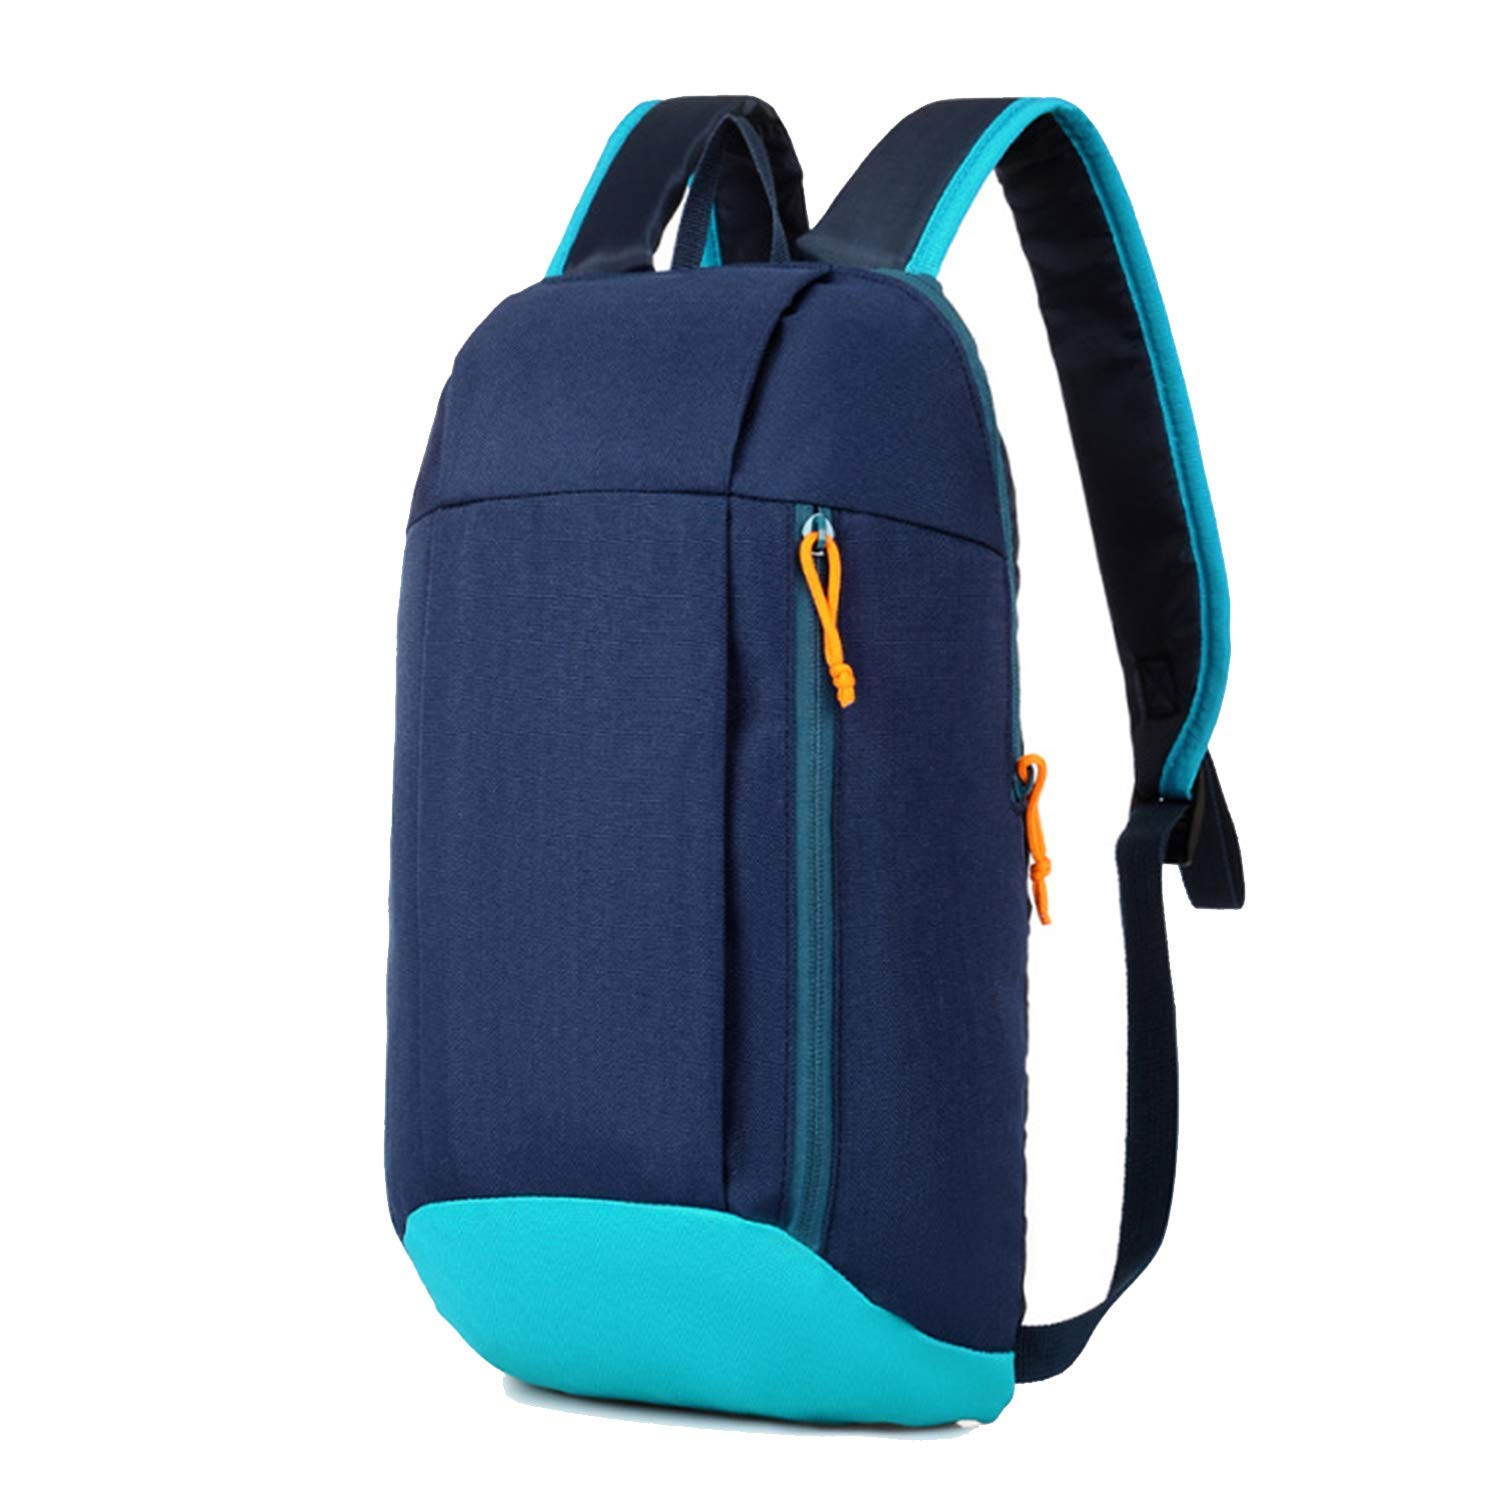 Berchirly Casual Travel School Backpack Doctor Style Daypack for Men Women Laptop Computer